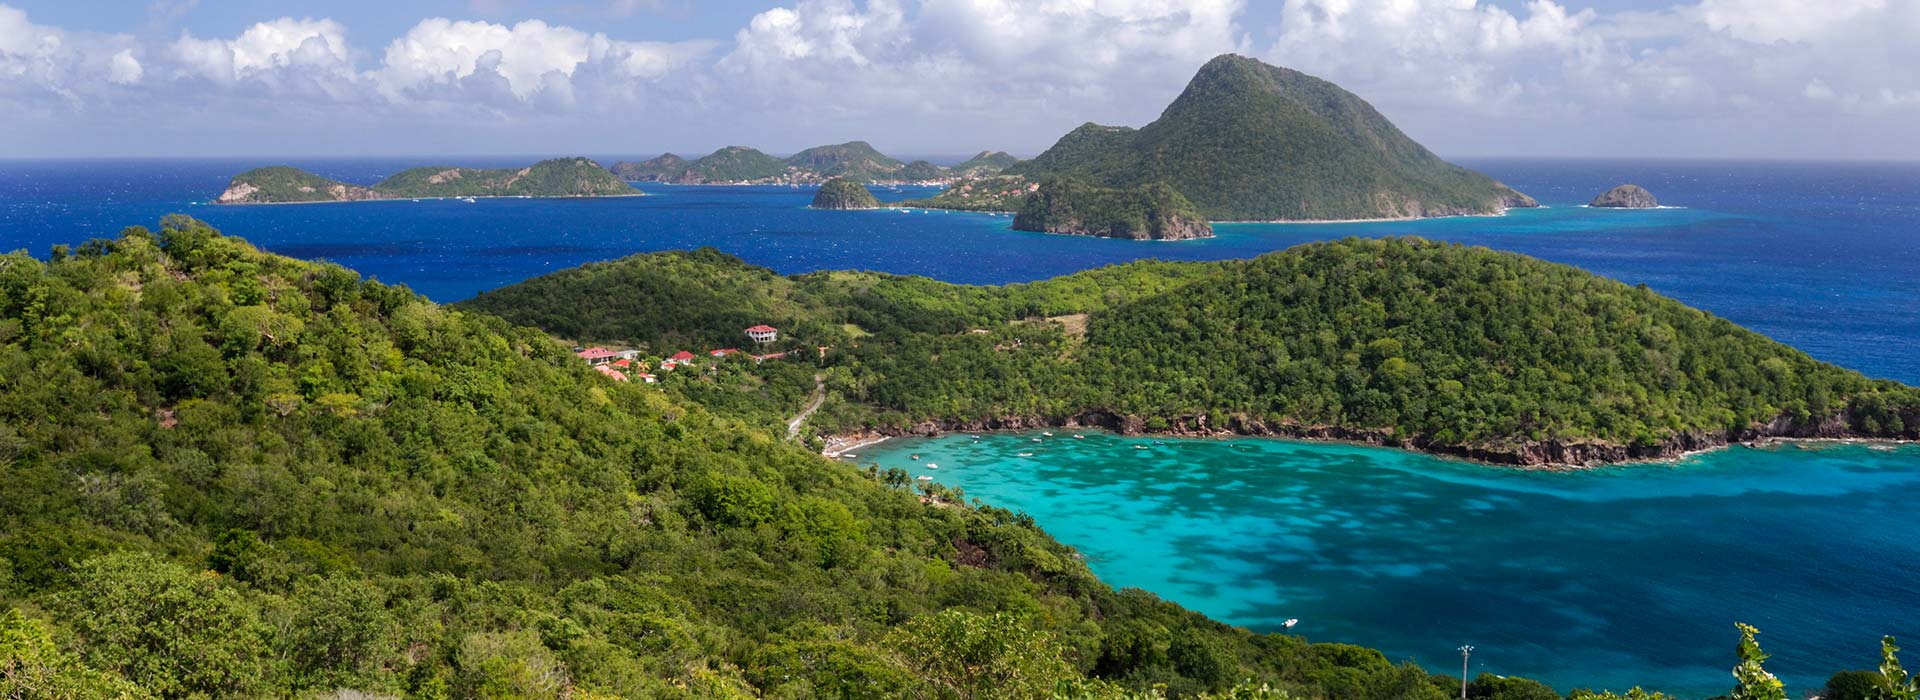 Explore The Beauty Of Caribbean: Guadeloupe Sailing Vacation